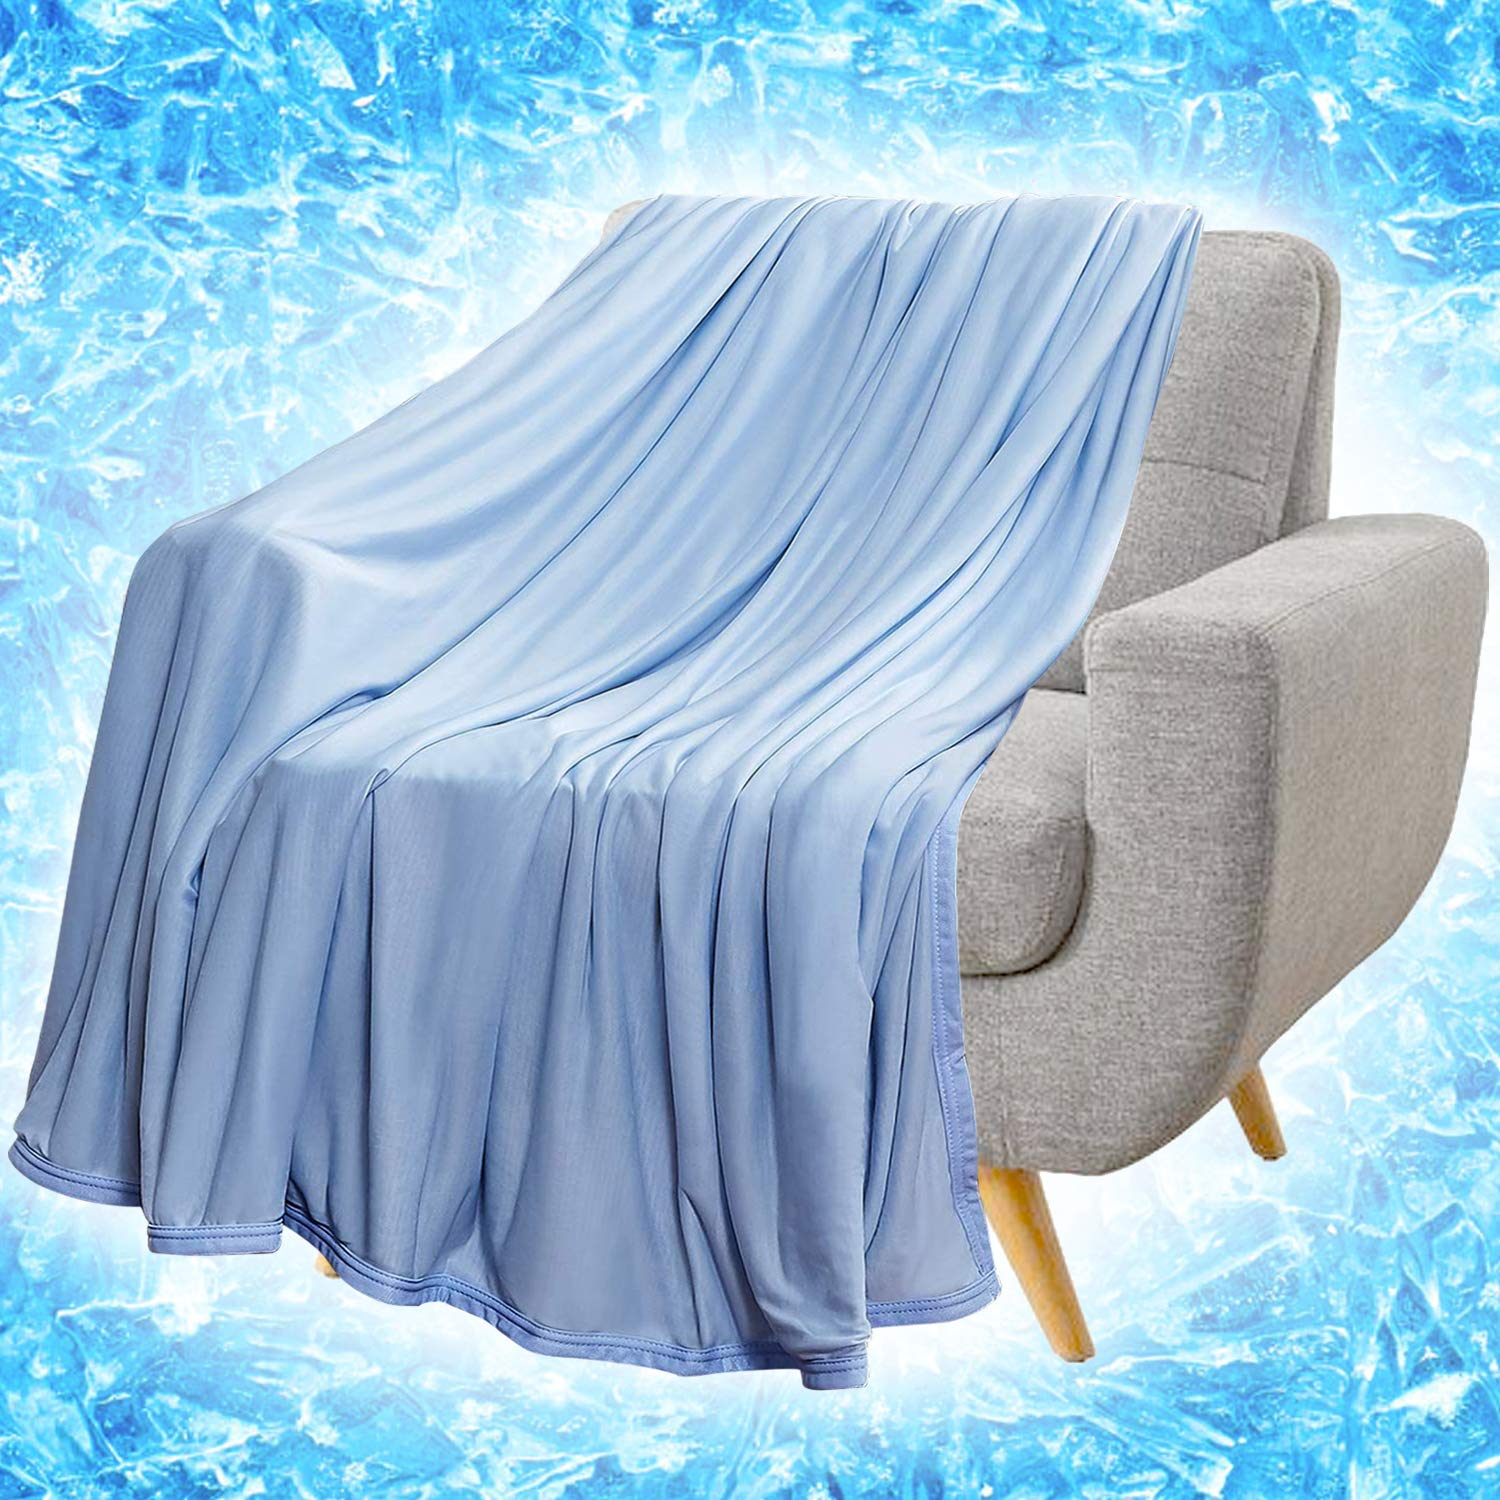 "RHF Cooling Blanket, Cooling Blankets, Cooling Blankets for Sleeping, Cooling Blanket for Bed, Summer Blanket, Cool Blanket, Lightweight Blanket, Cooling Blankets for Night Sweats(71"" × 79"")"